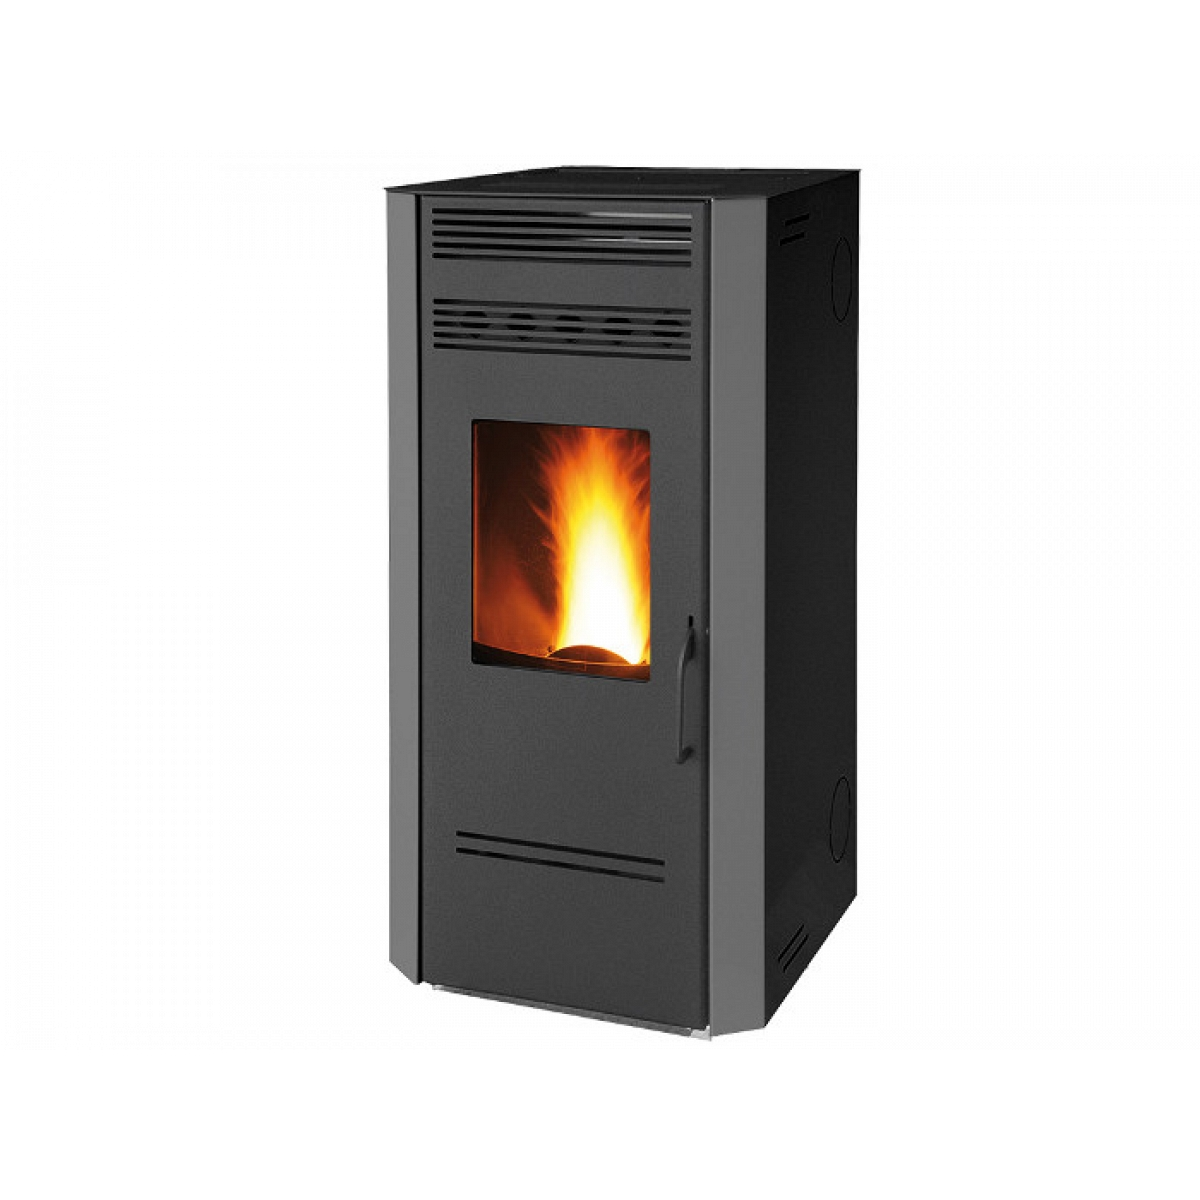 Black Pellet Stove 9 Amp 5 Kw With Health System